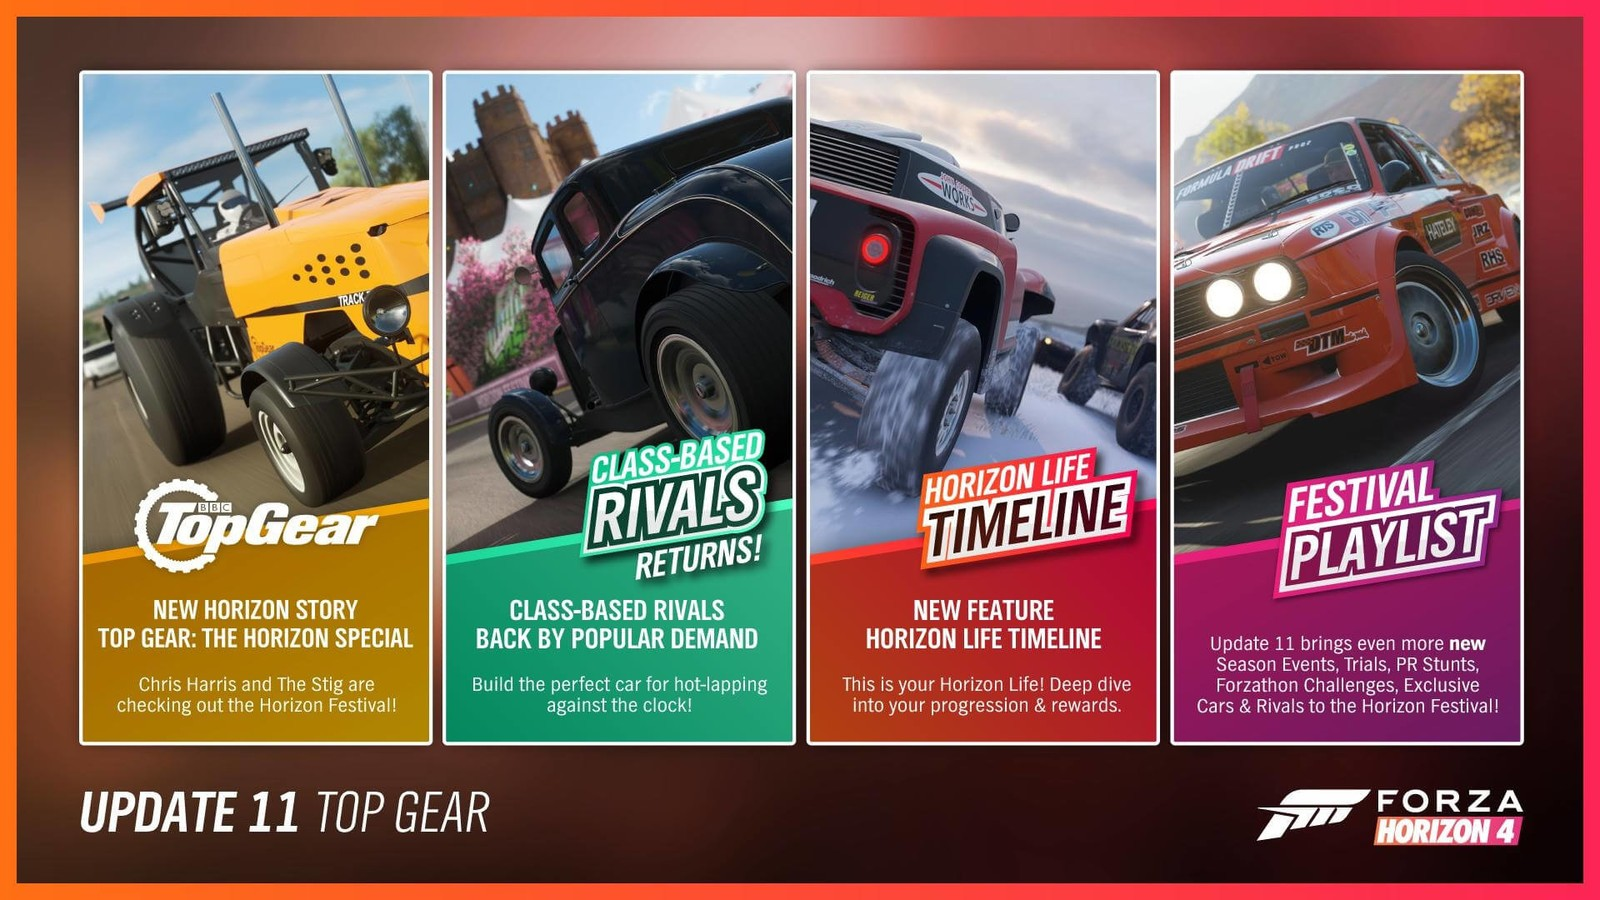 Forza Horizon 4/Update 11